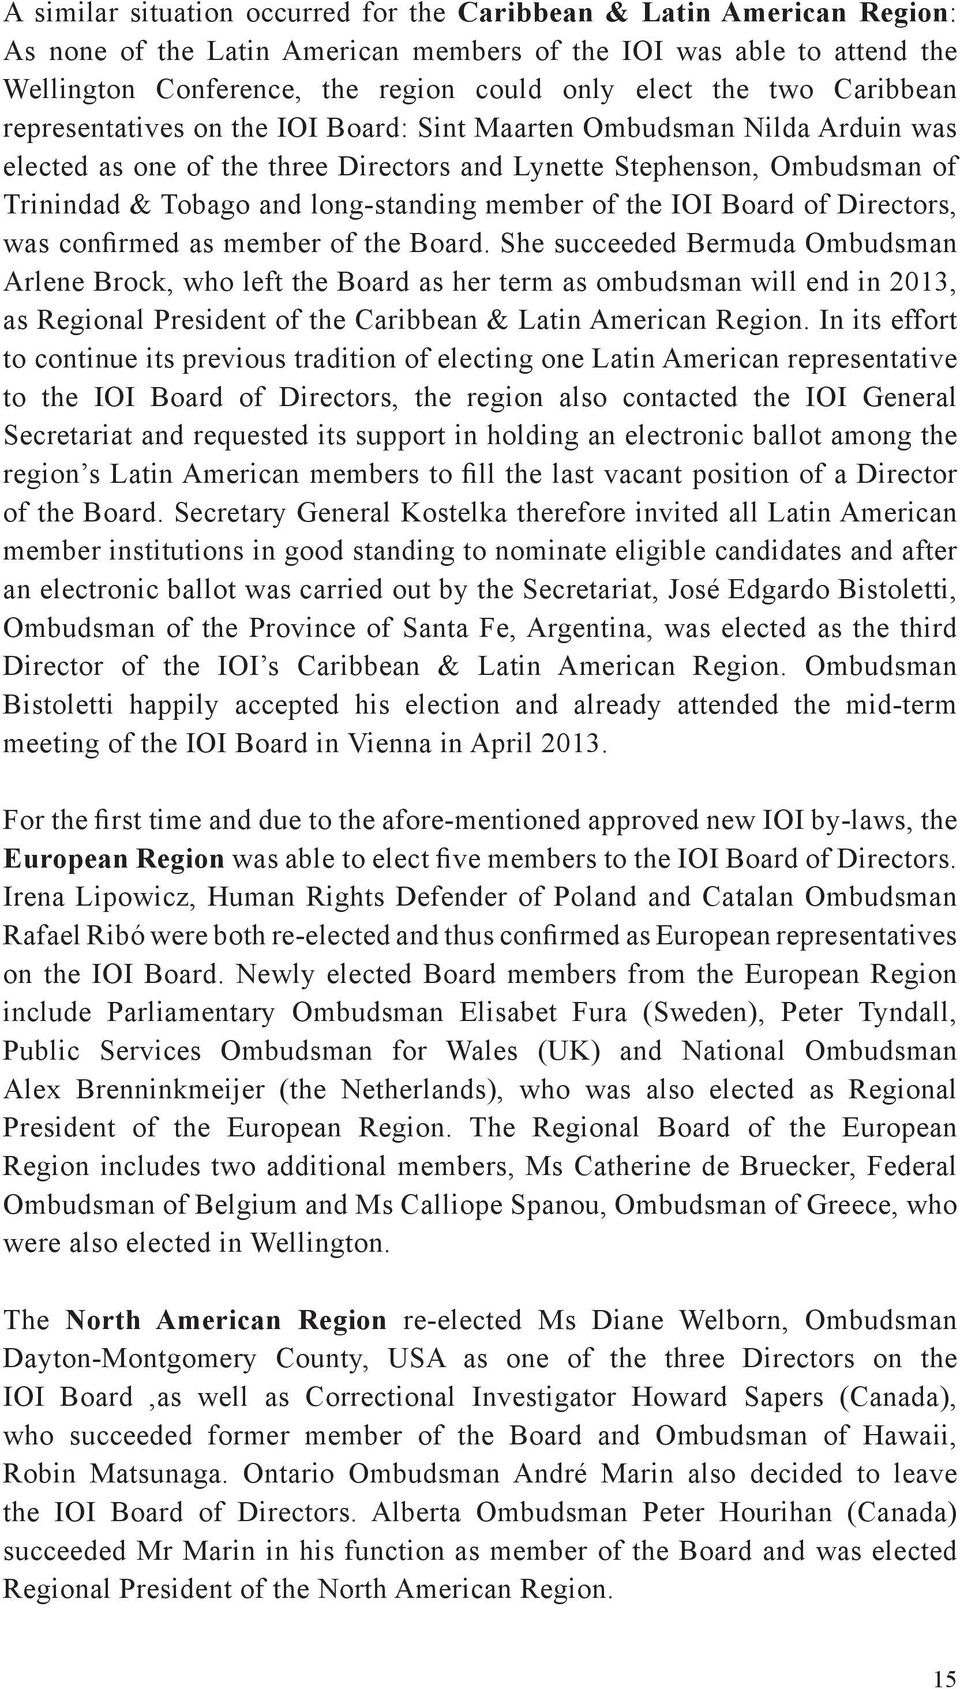 member of the IOI Board of Directors, was confirmed as member of the Board.